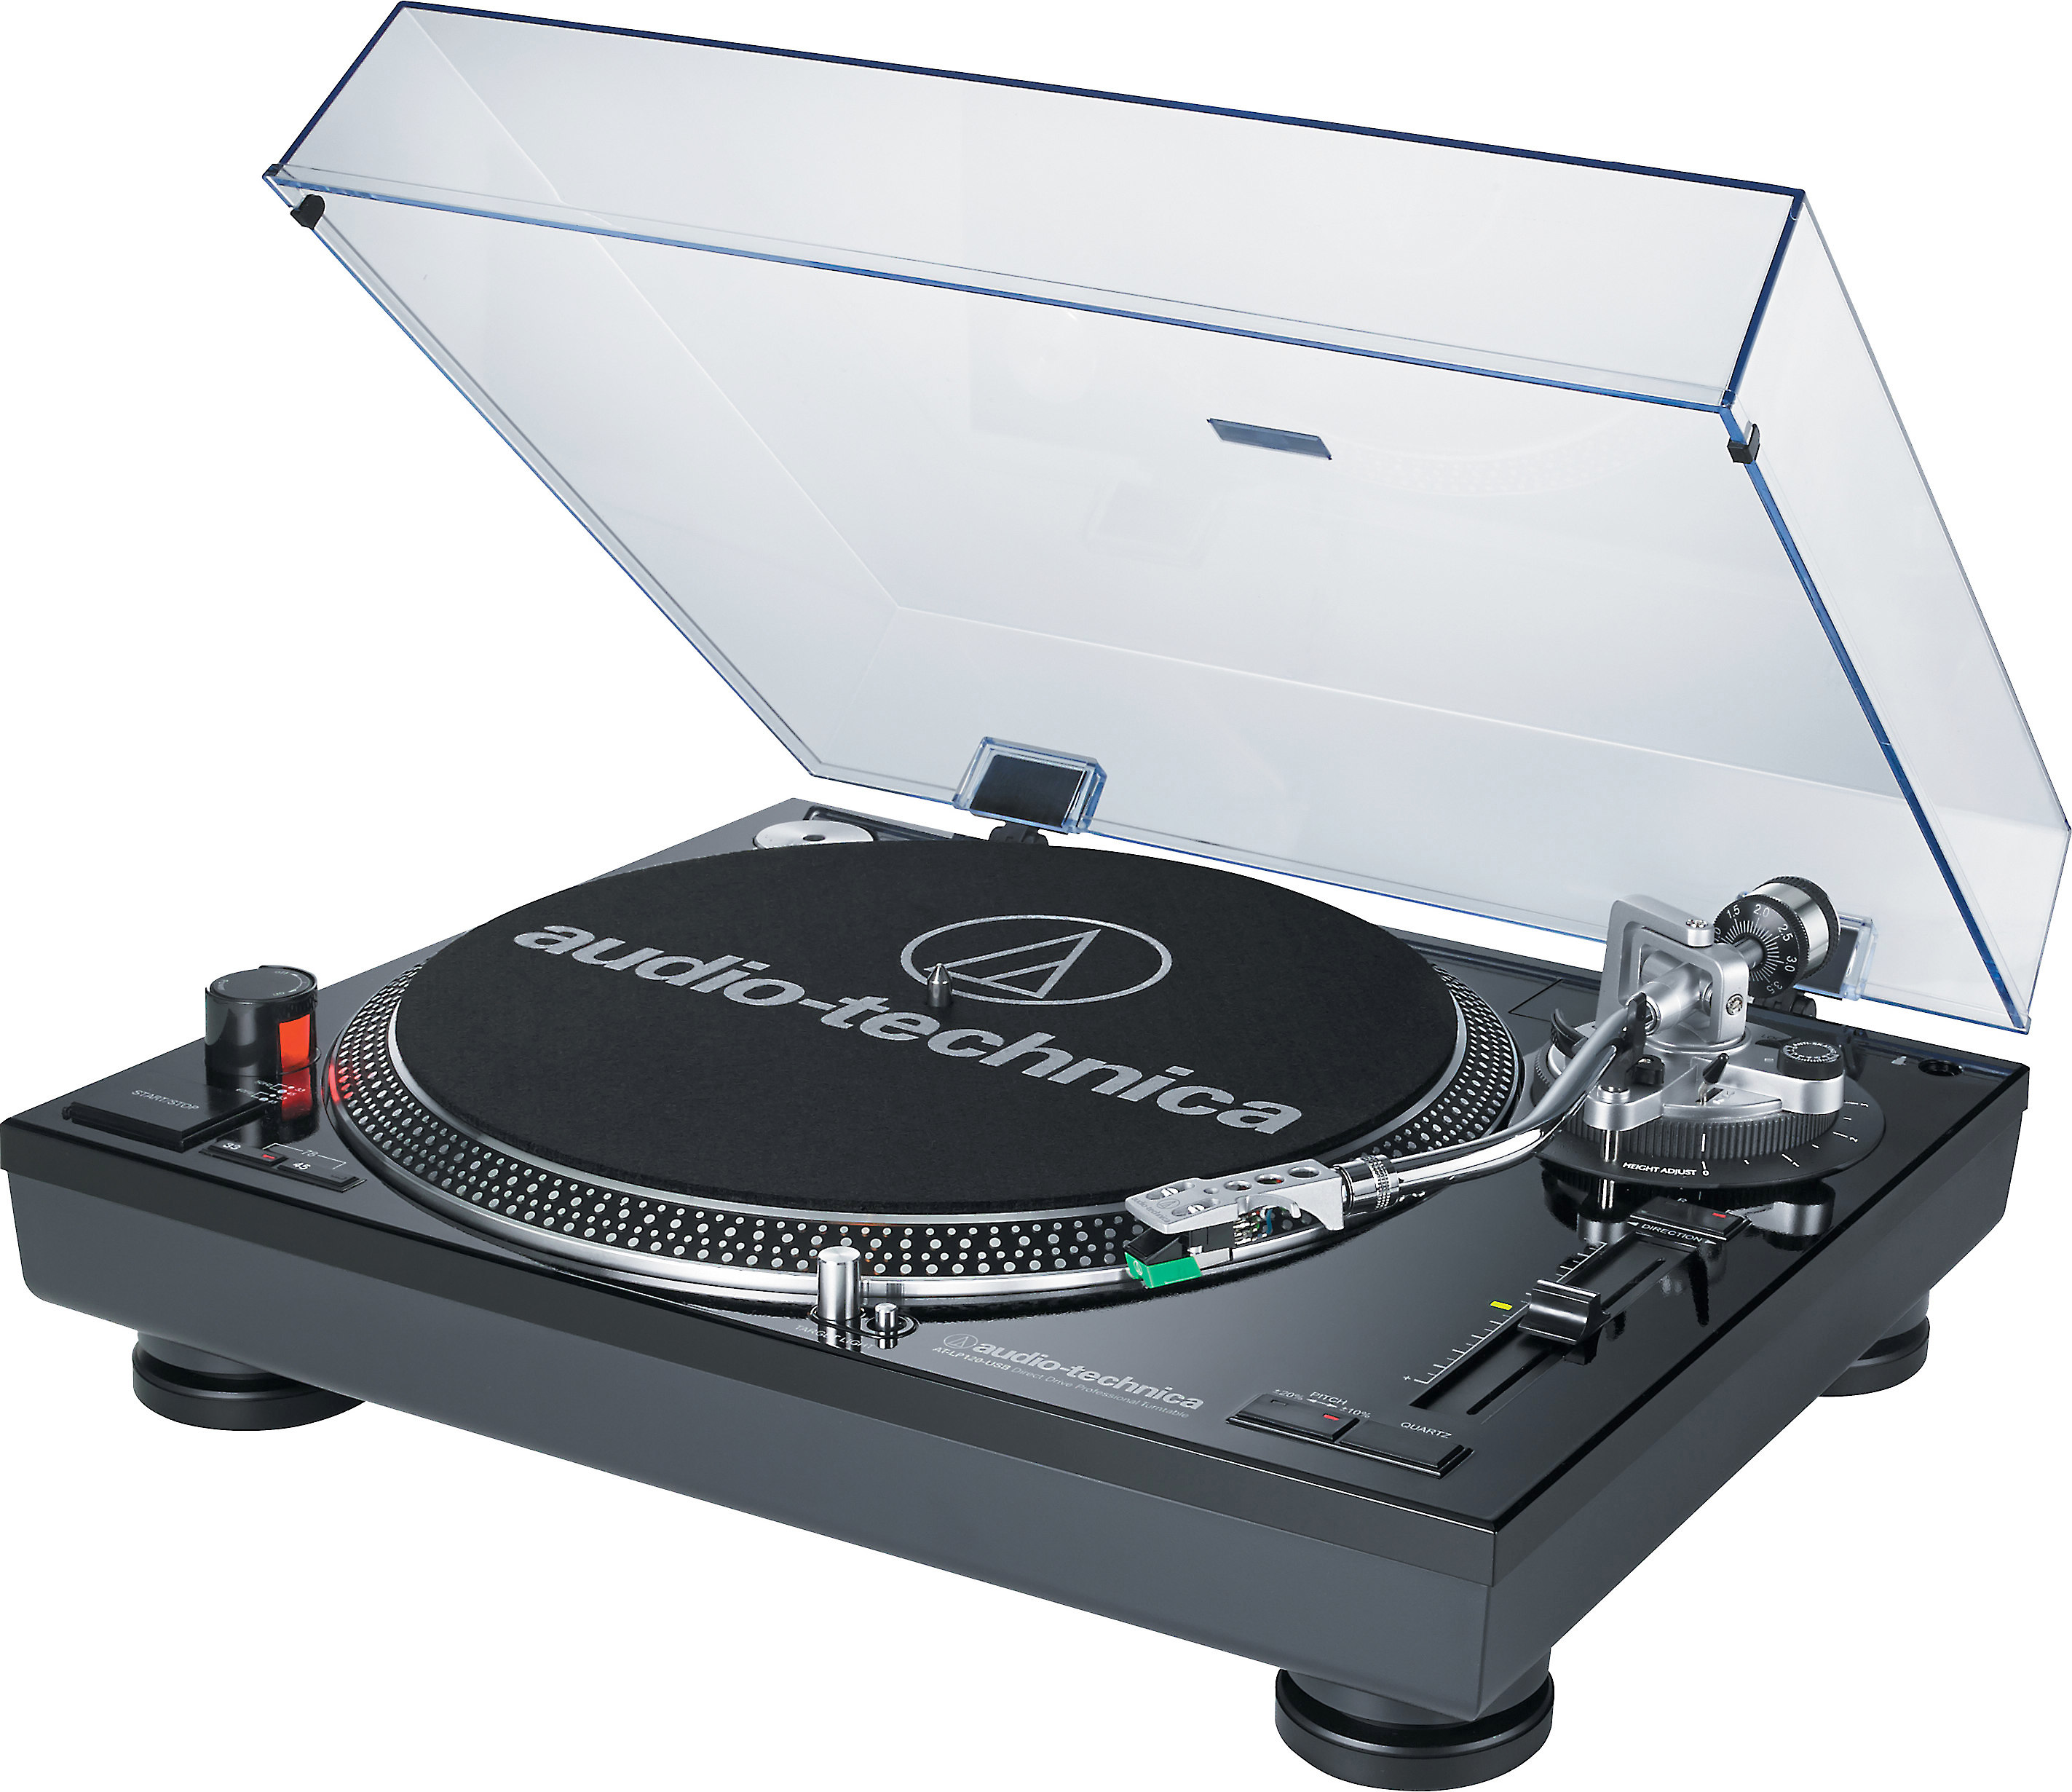 Audio Technica AT LP120 USB (Black) Manual direct drive professional turntable with USB output and built in phono preamp at Crutchfield